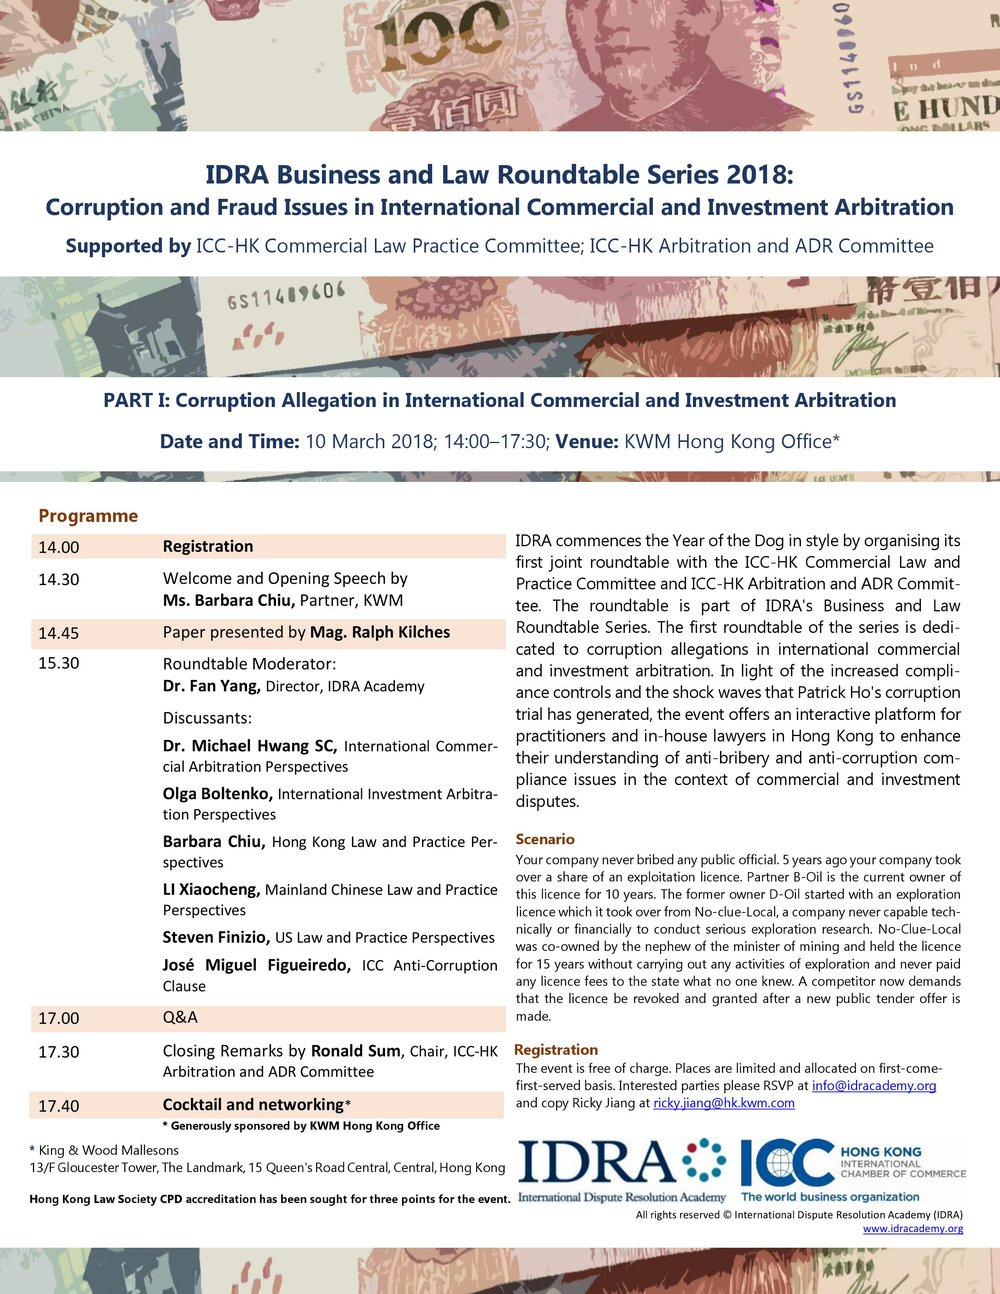 IDRA Public Roundtable Series 2018 - Flyer 21.02.2018.jpg